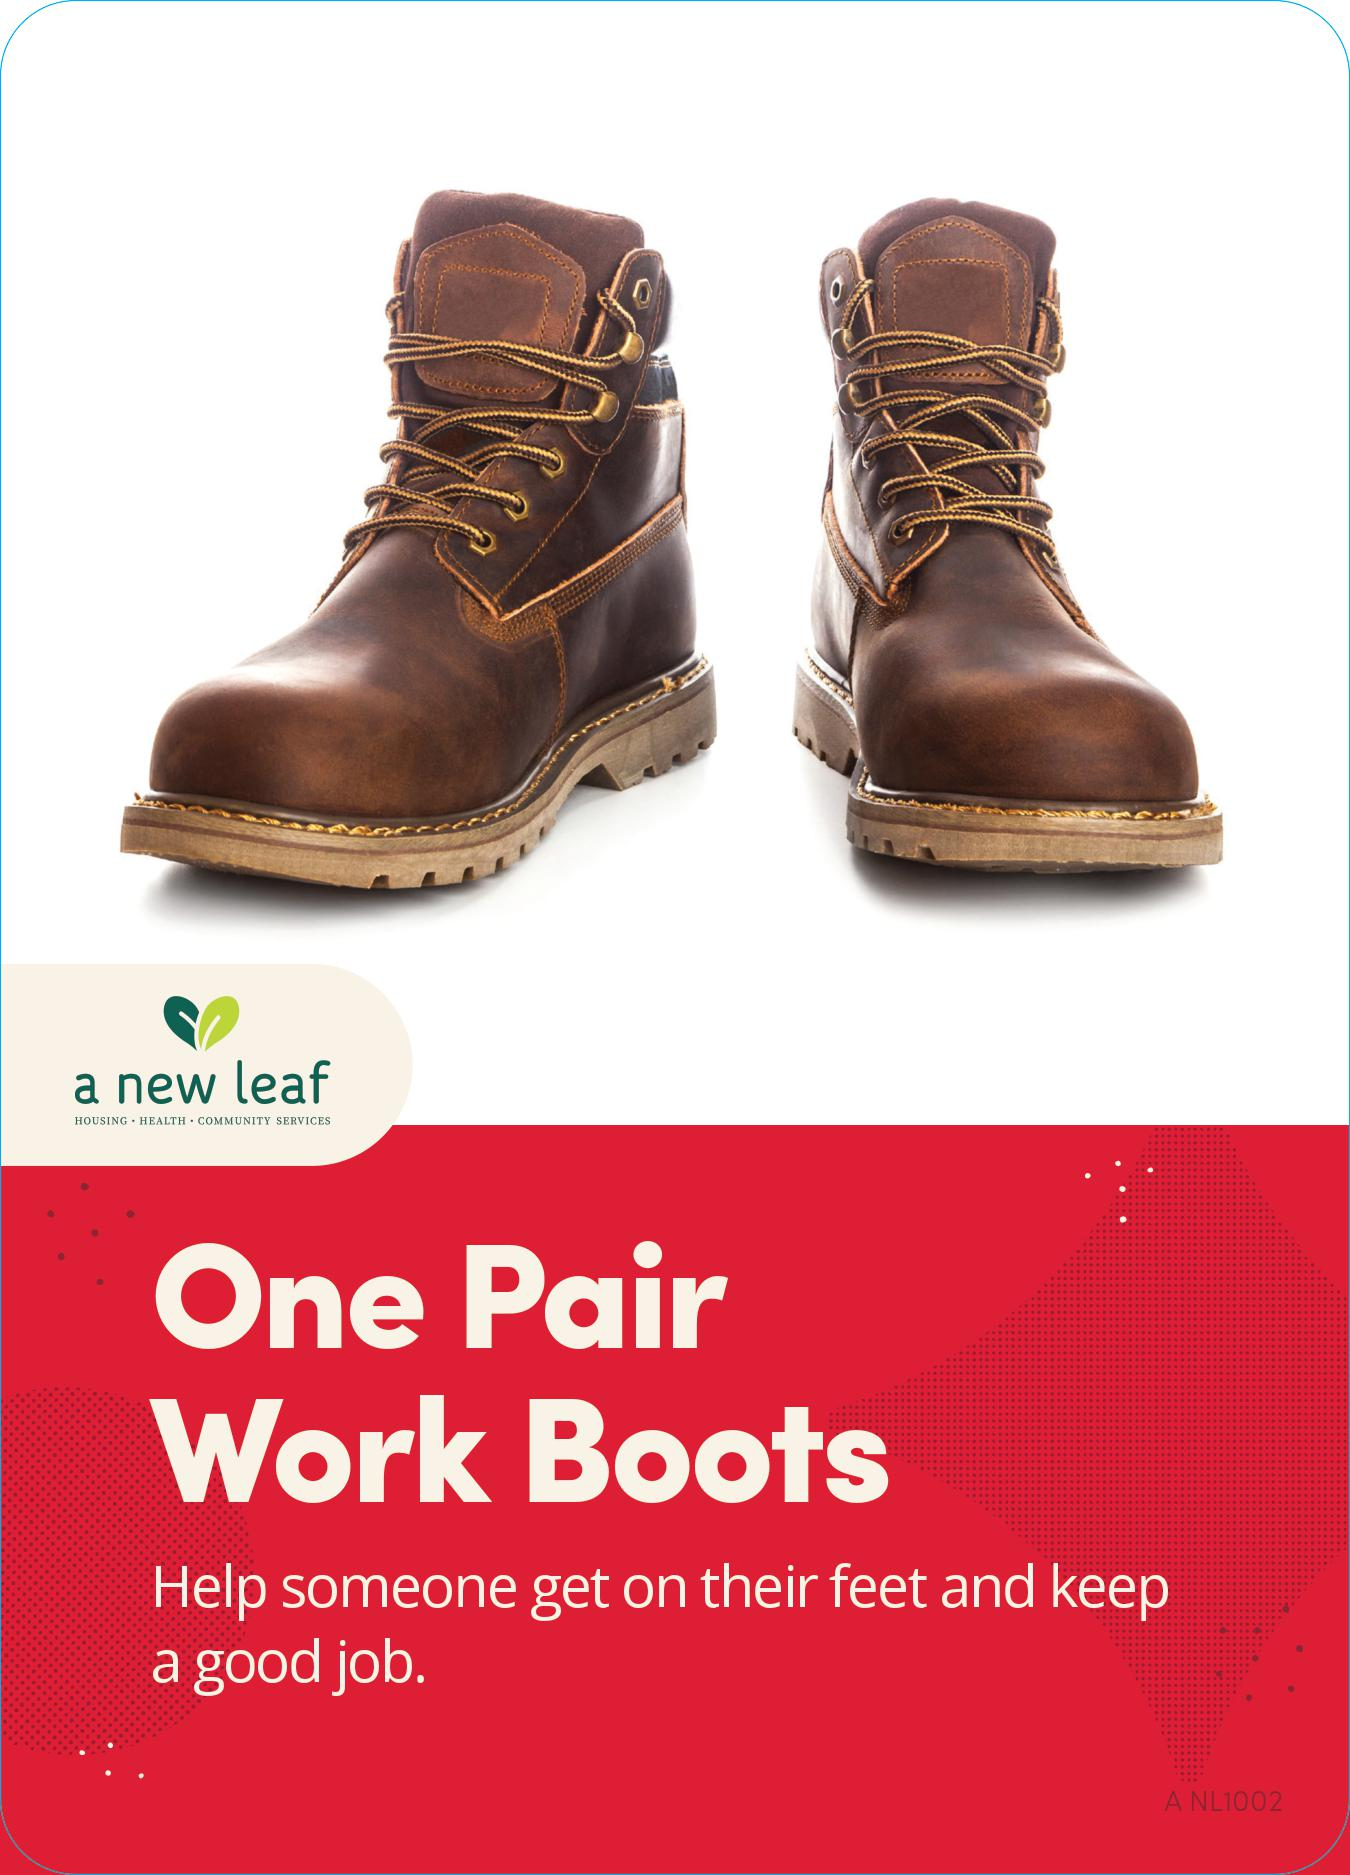 $50 - Work Boots for Homeless Individuals